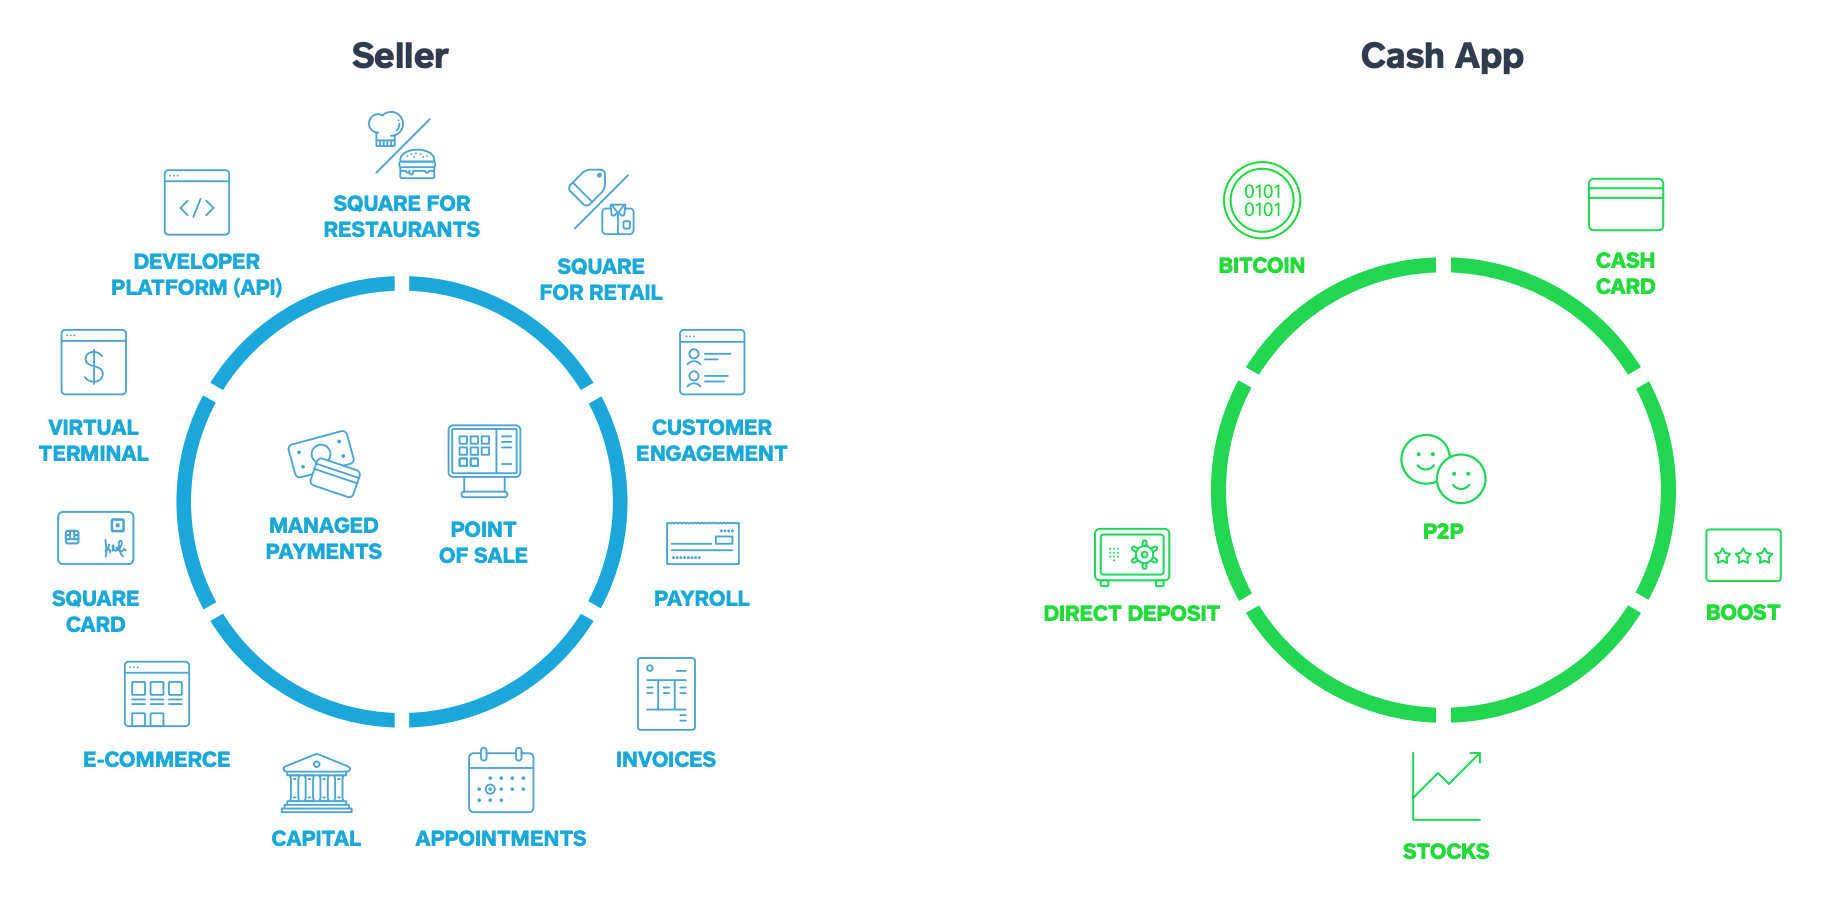 How Does Square Make Money? Square Business Model In A Nutshell